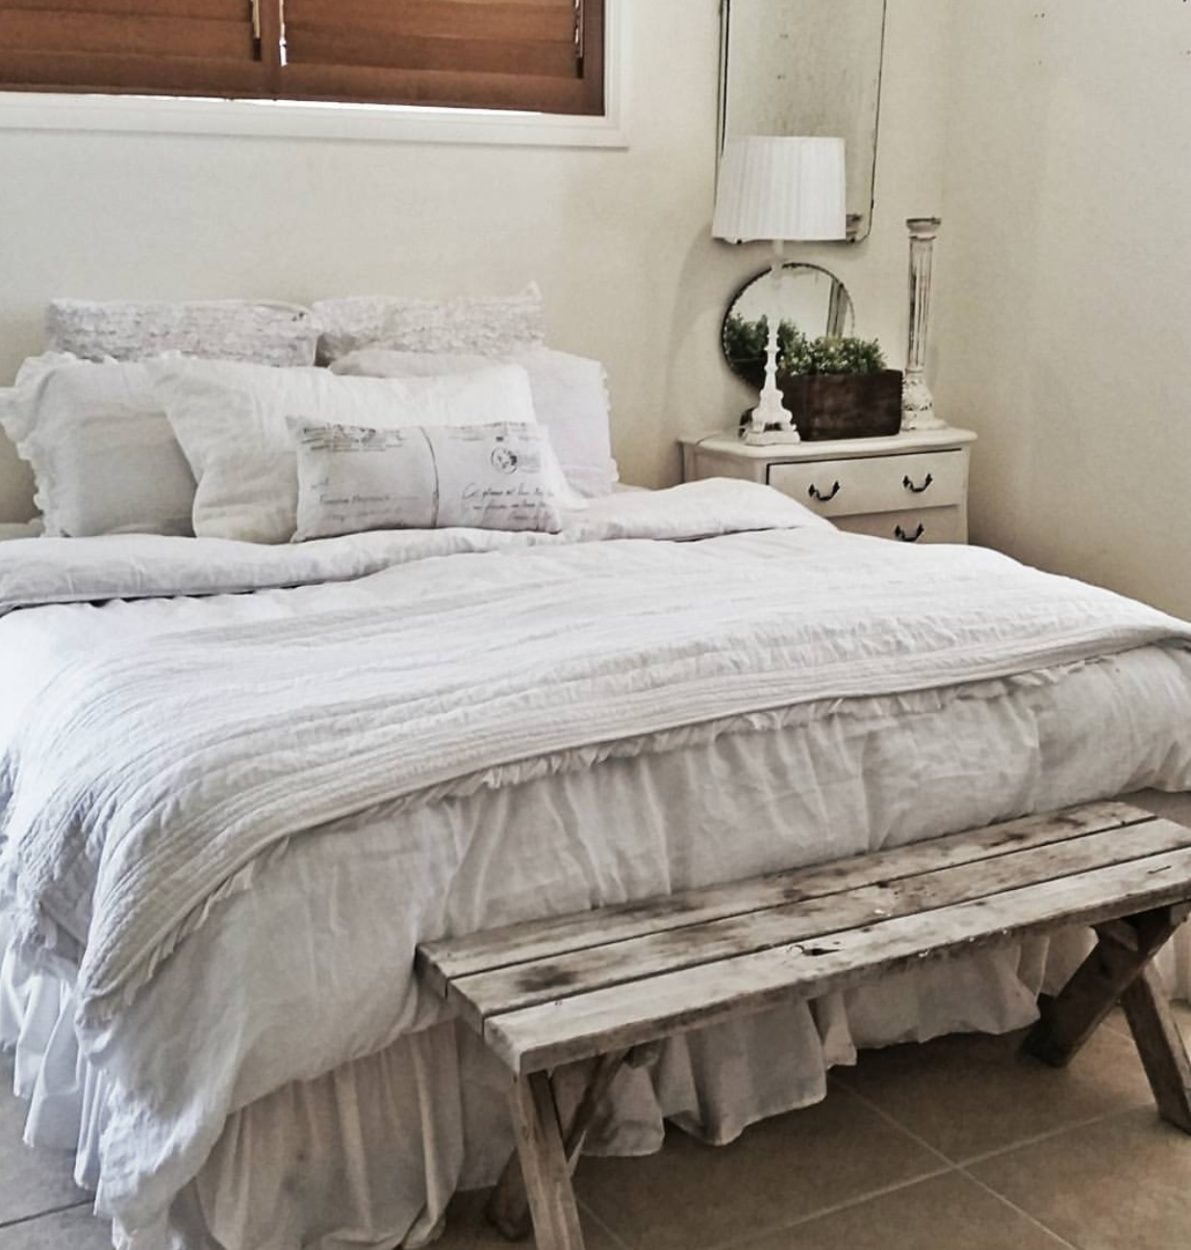 Farmhouse bedroom. This salvaged farmhouse tour is perfect. If you love fixer upper, you will love this home! Salvaged wood bench gives a perfect rustic element.